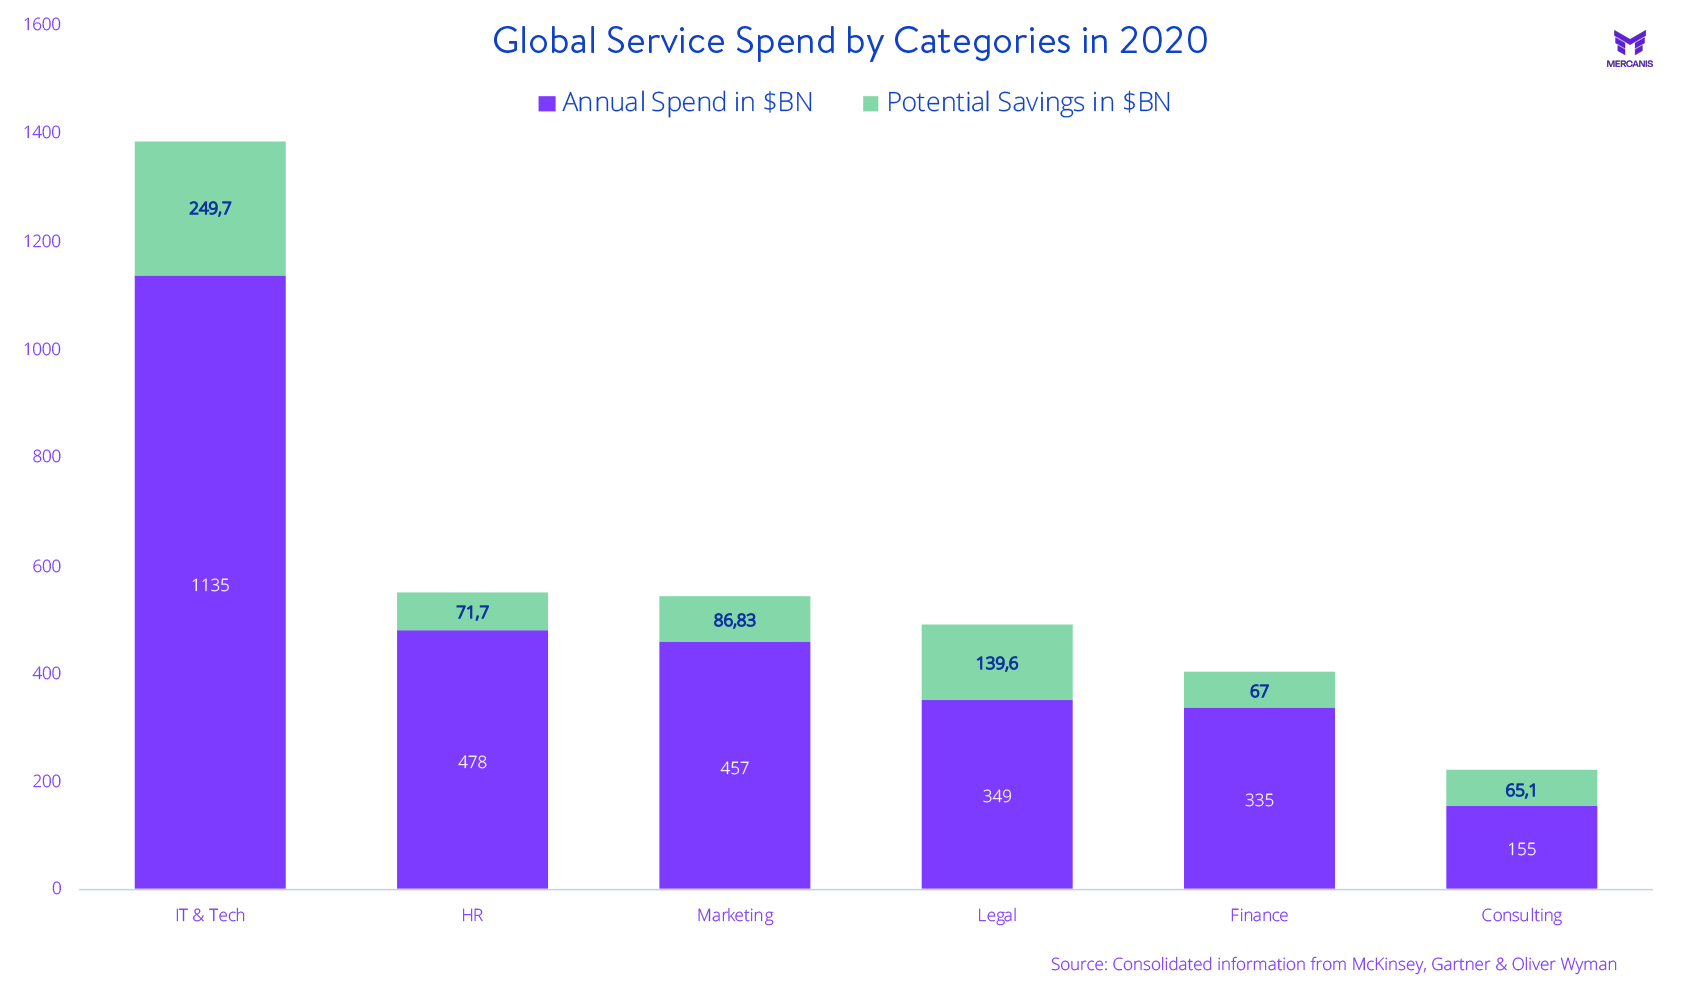 A graph that shows the global service spend by categories in 2020. IT Spend was the highest, followed by HR, Marketing and Legal.